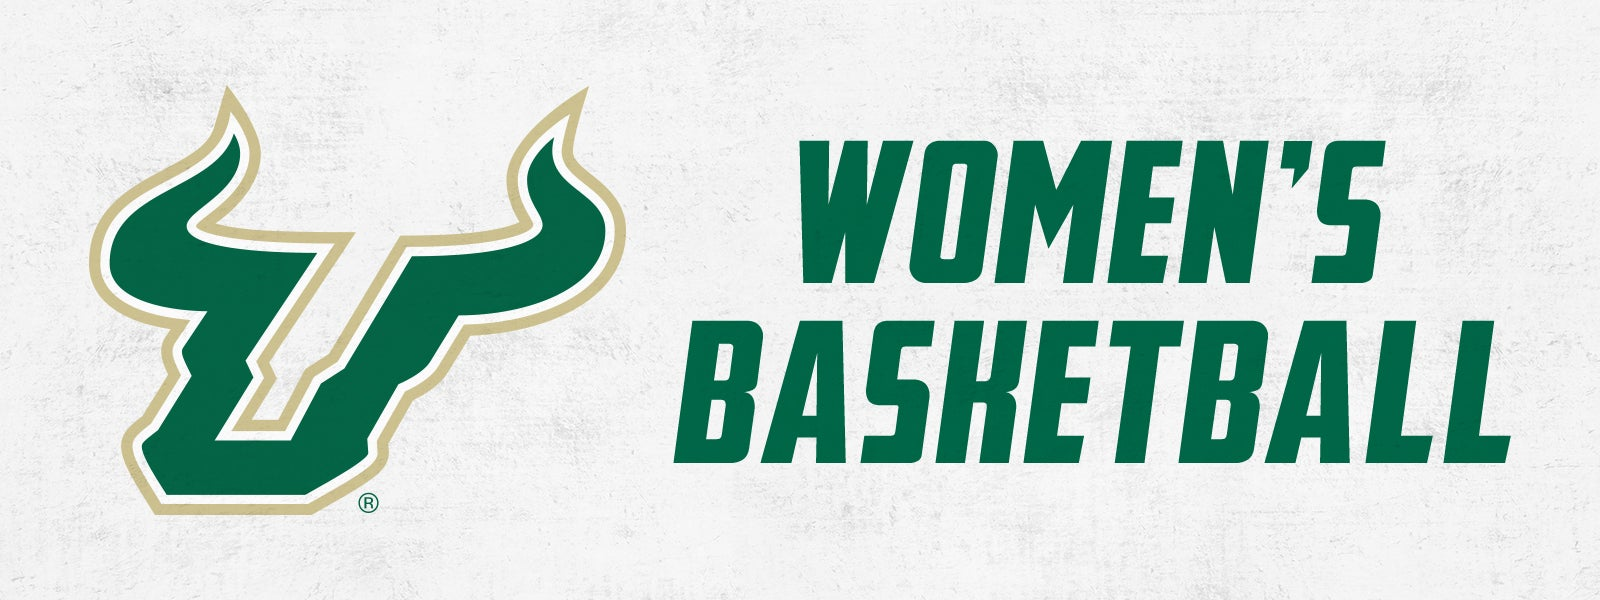 USF Women's Basketball vs. UCF